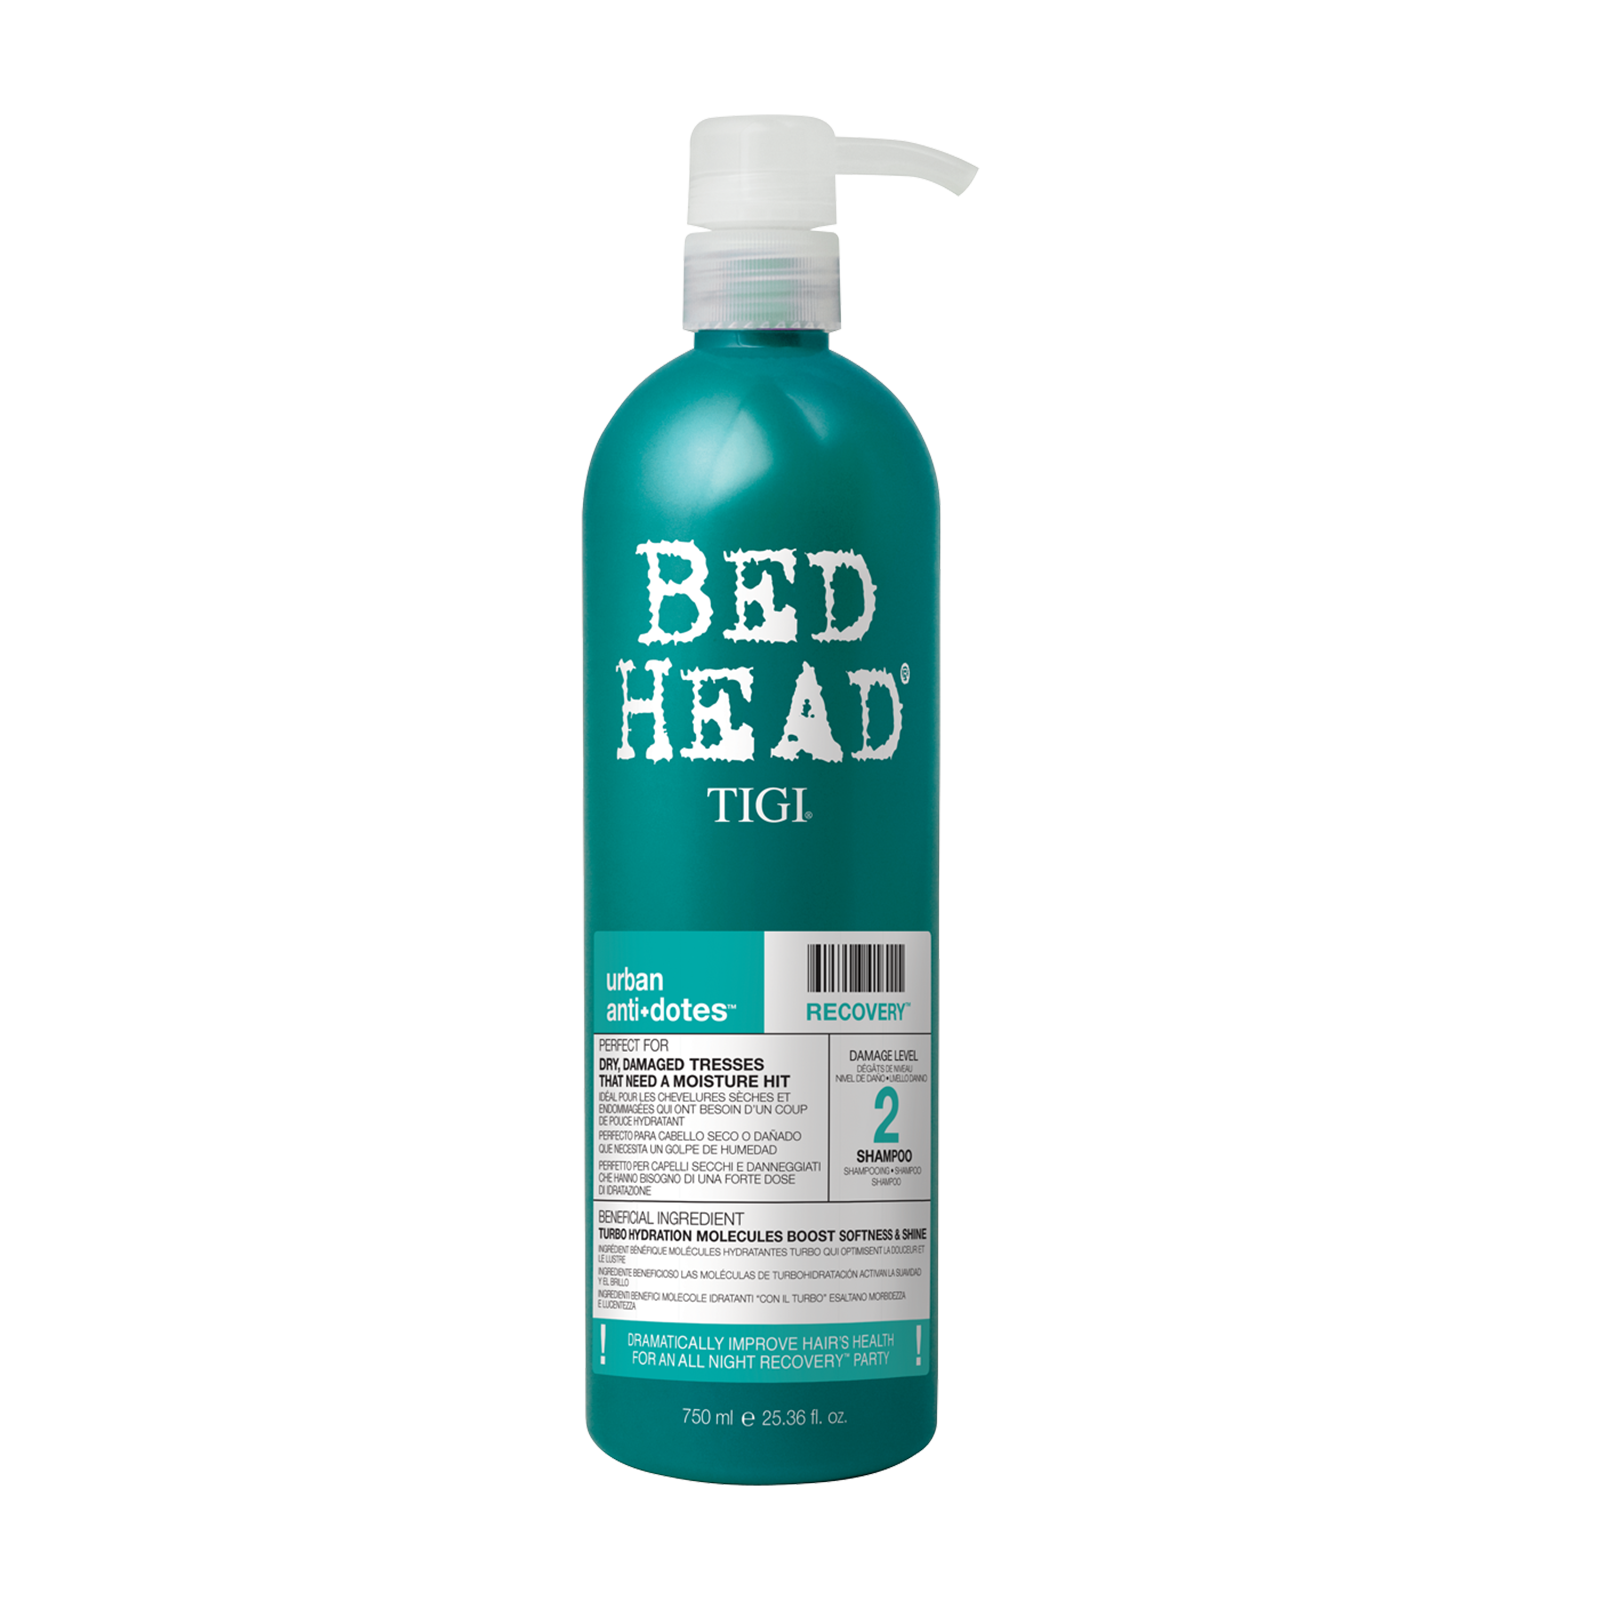 Bed Head Urban Antidotes Recovery Shampoo